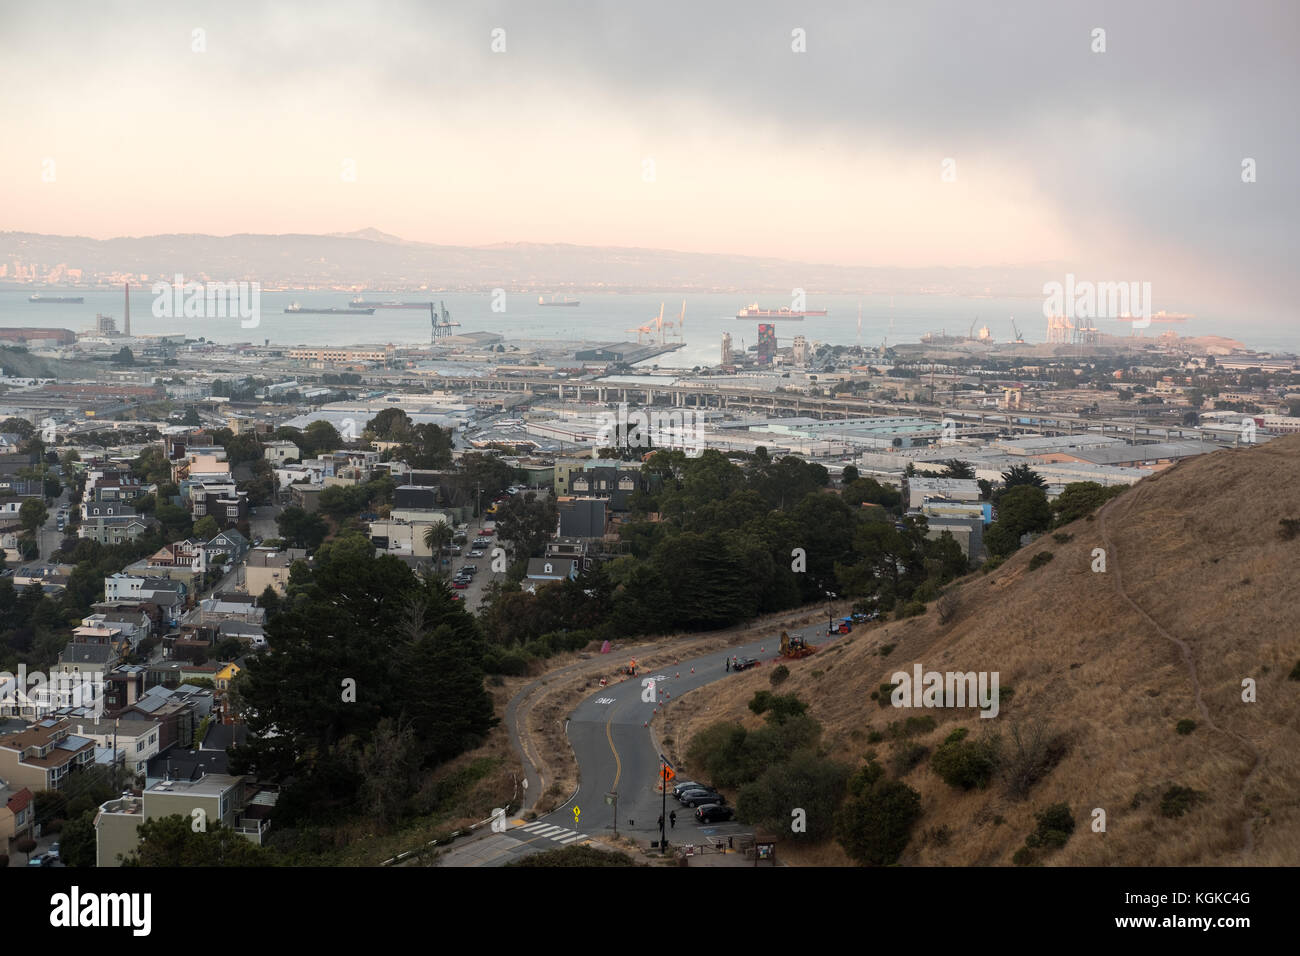 Fog rolls over downtown San Francisco seen from atop Bernal Heights. - Stock Image